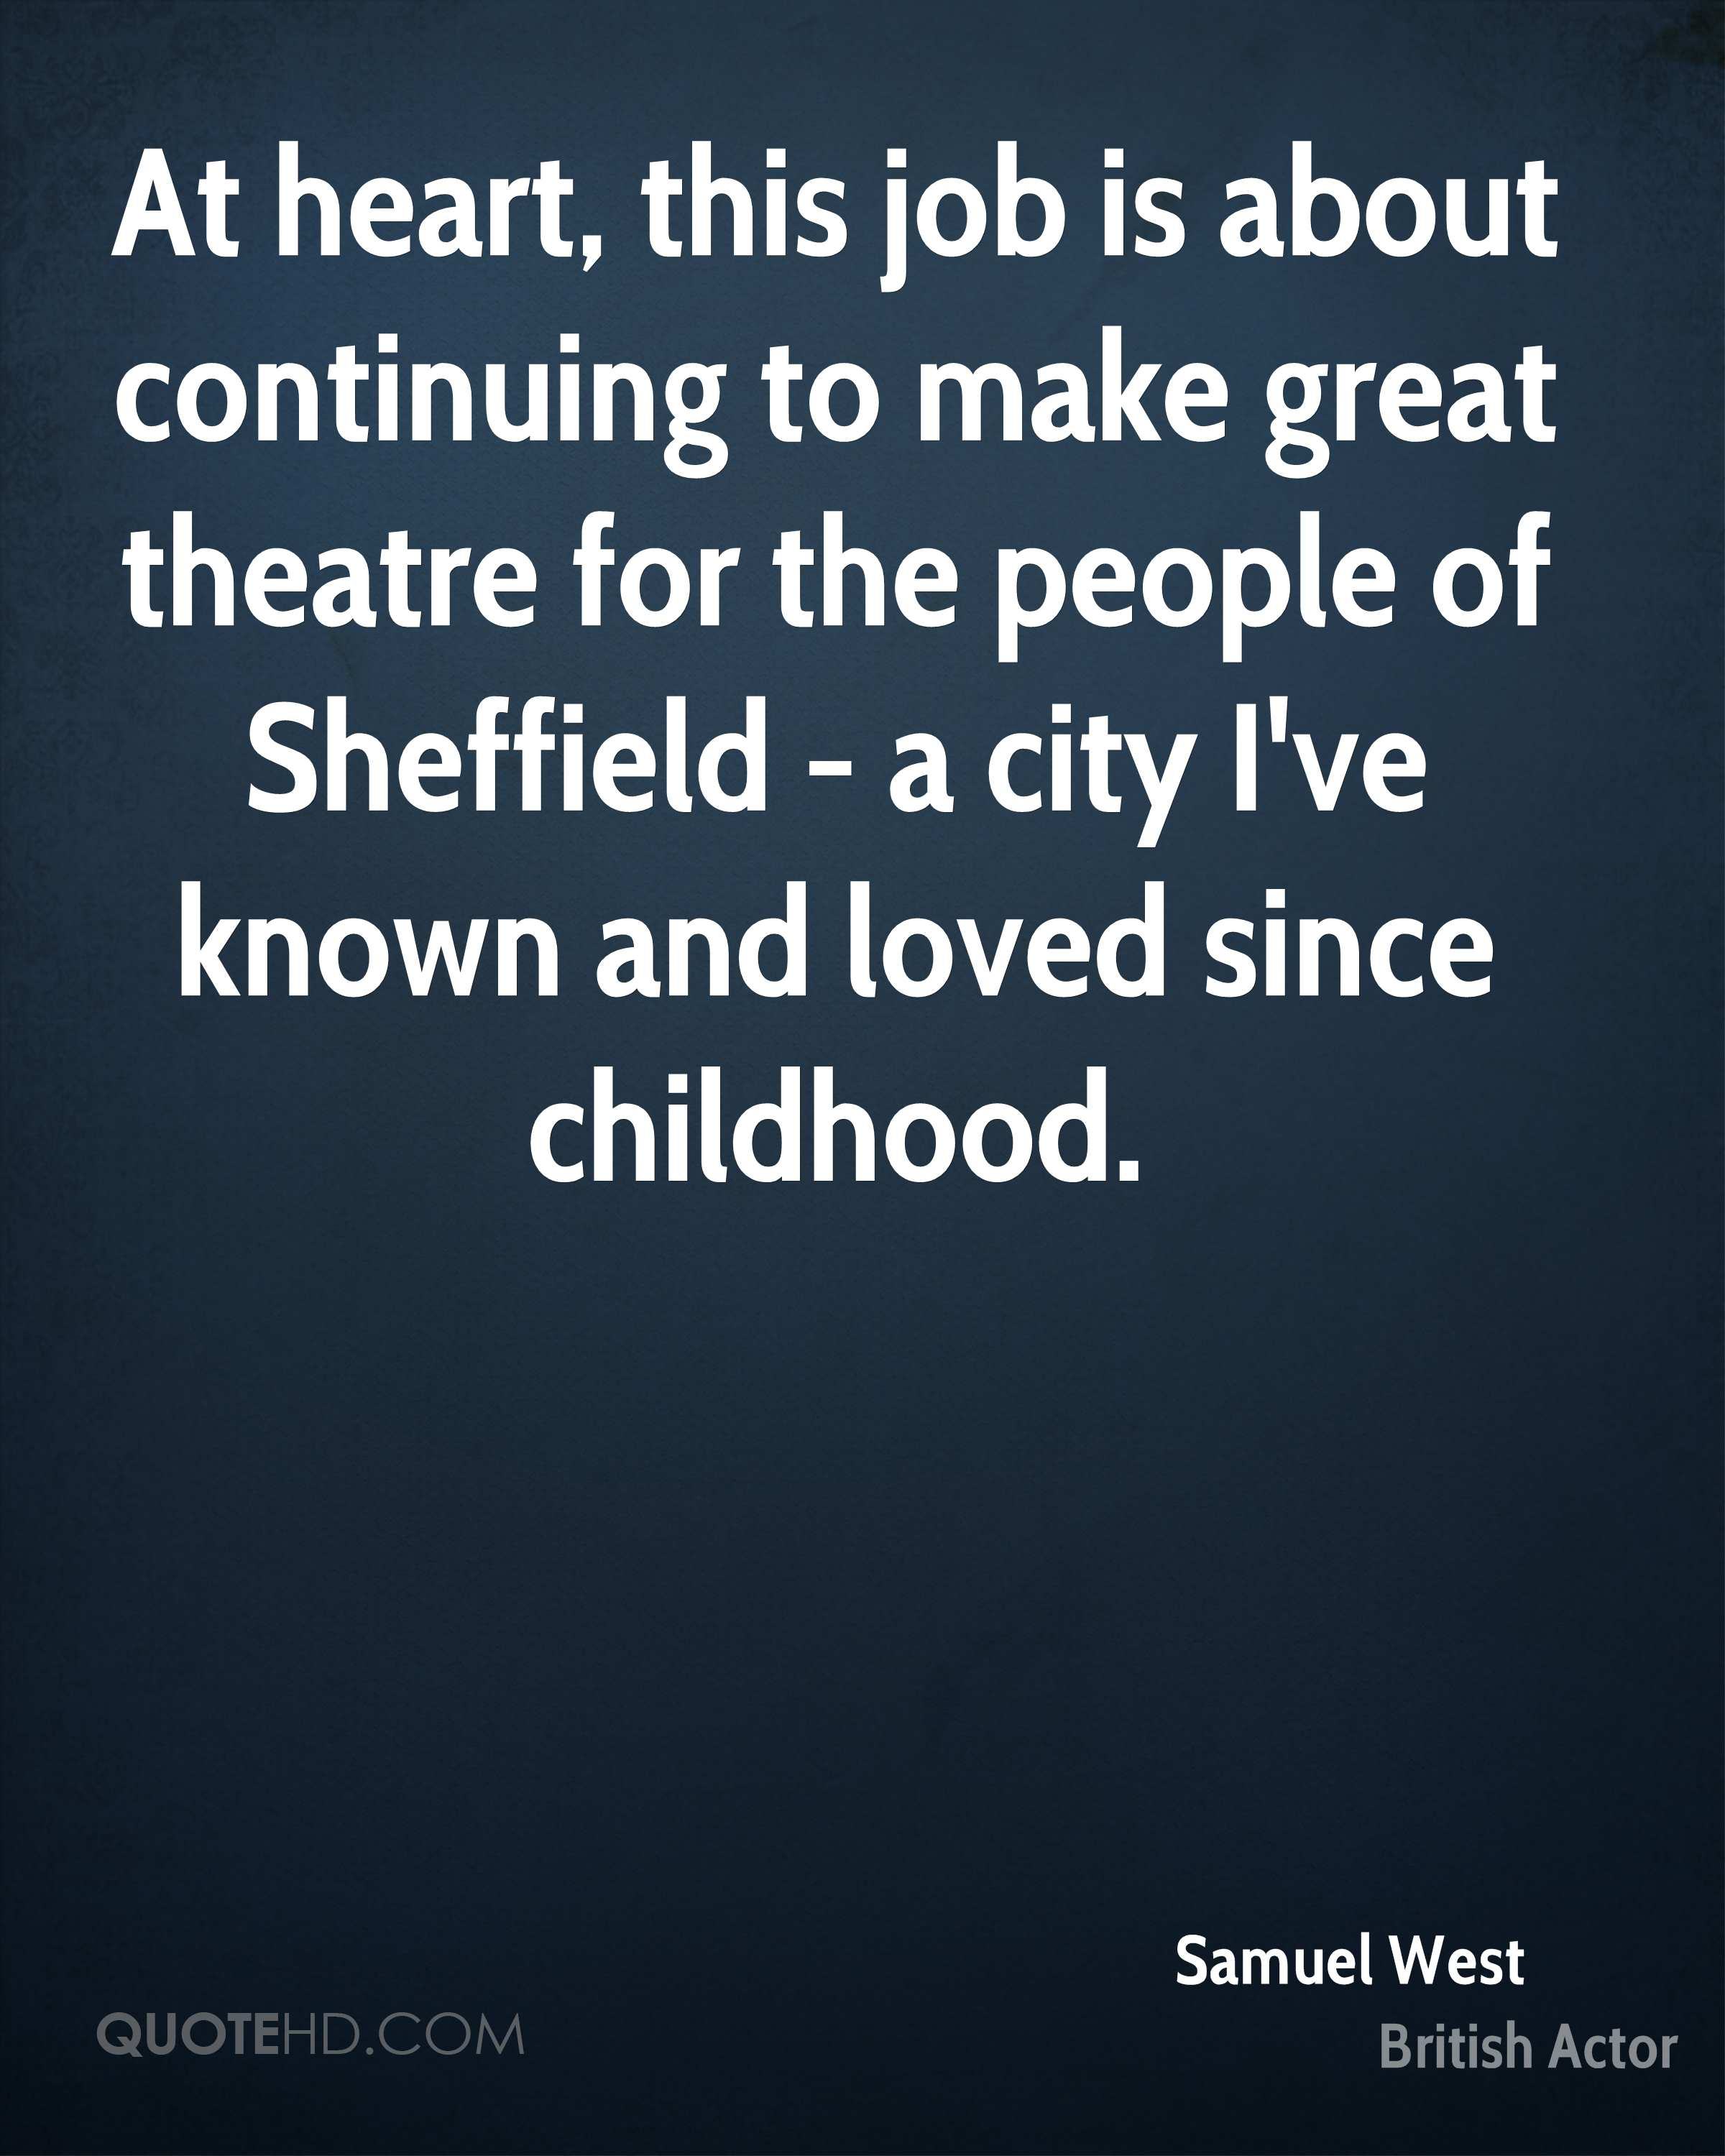 At heart, this job is about continuing to make great theatre for the people of Sheffield - a city I've known and loved since childhood.